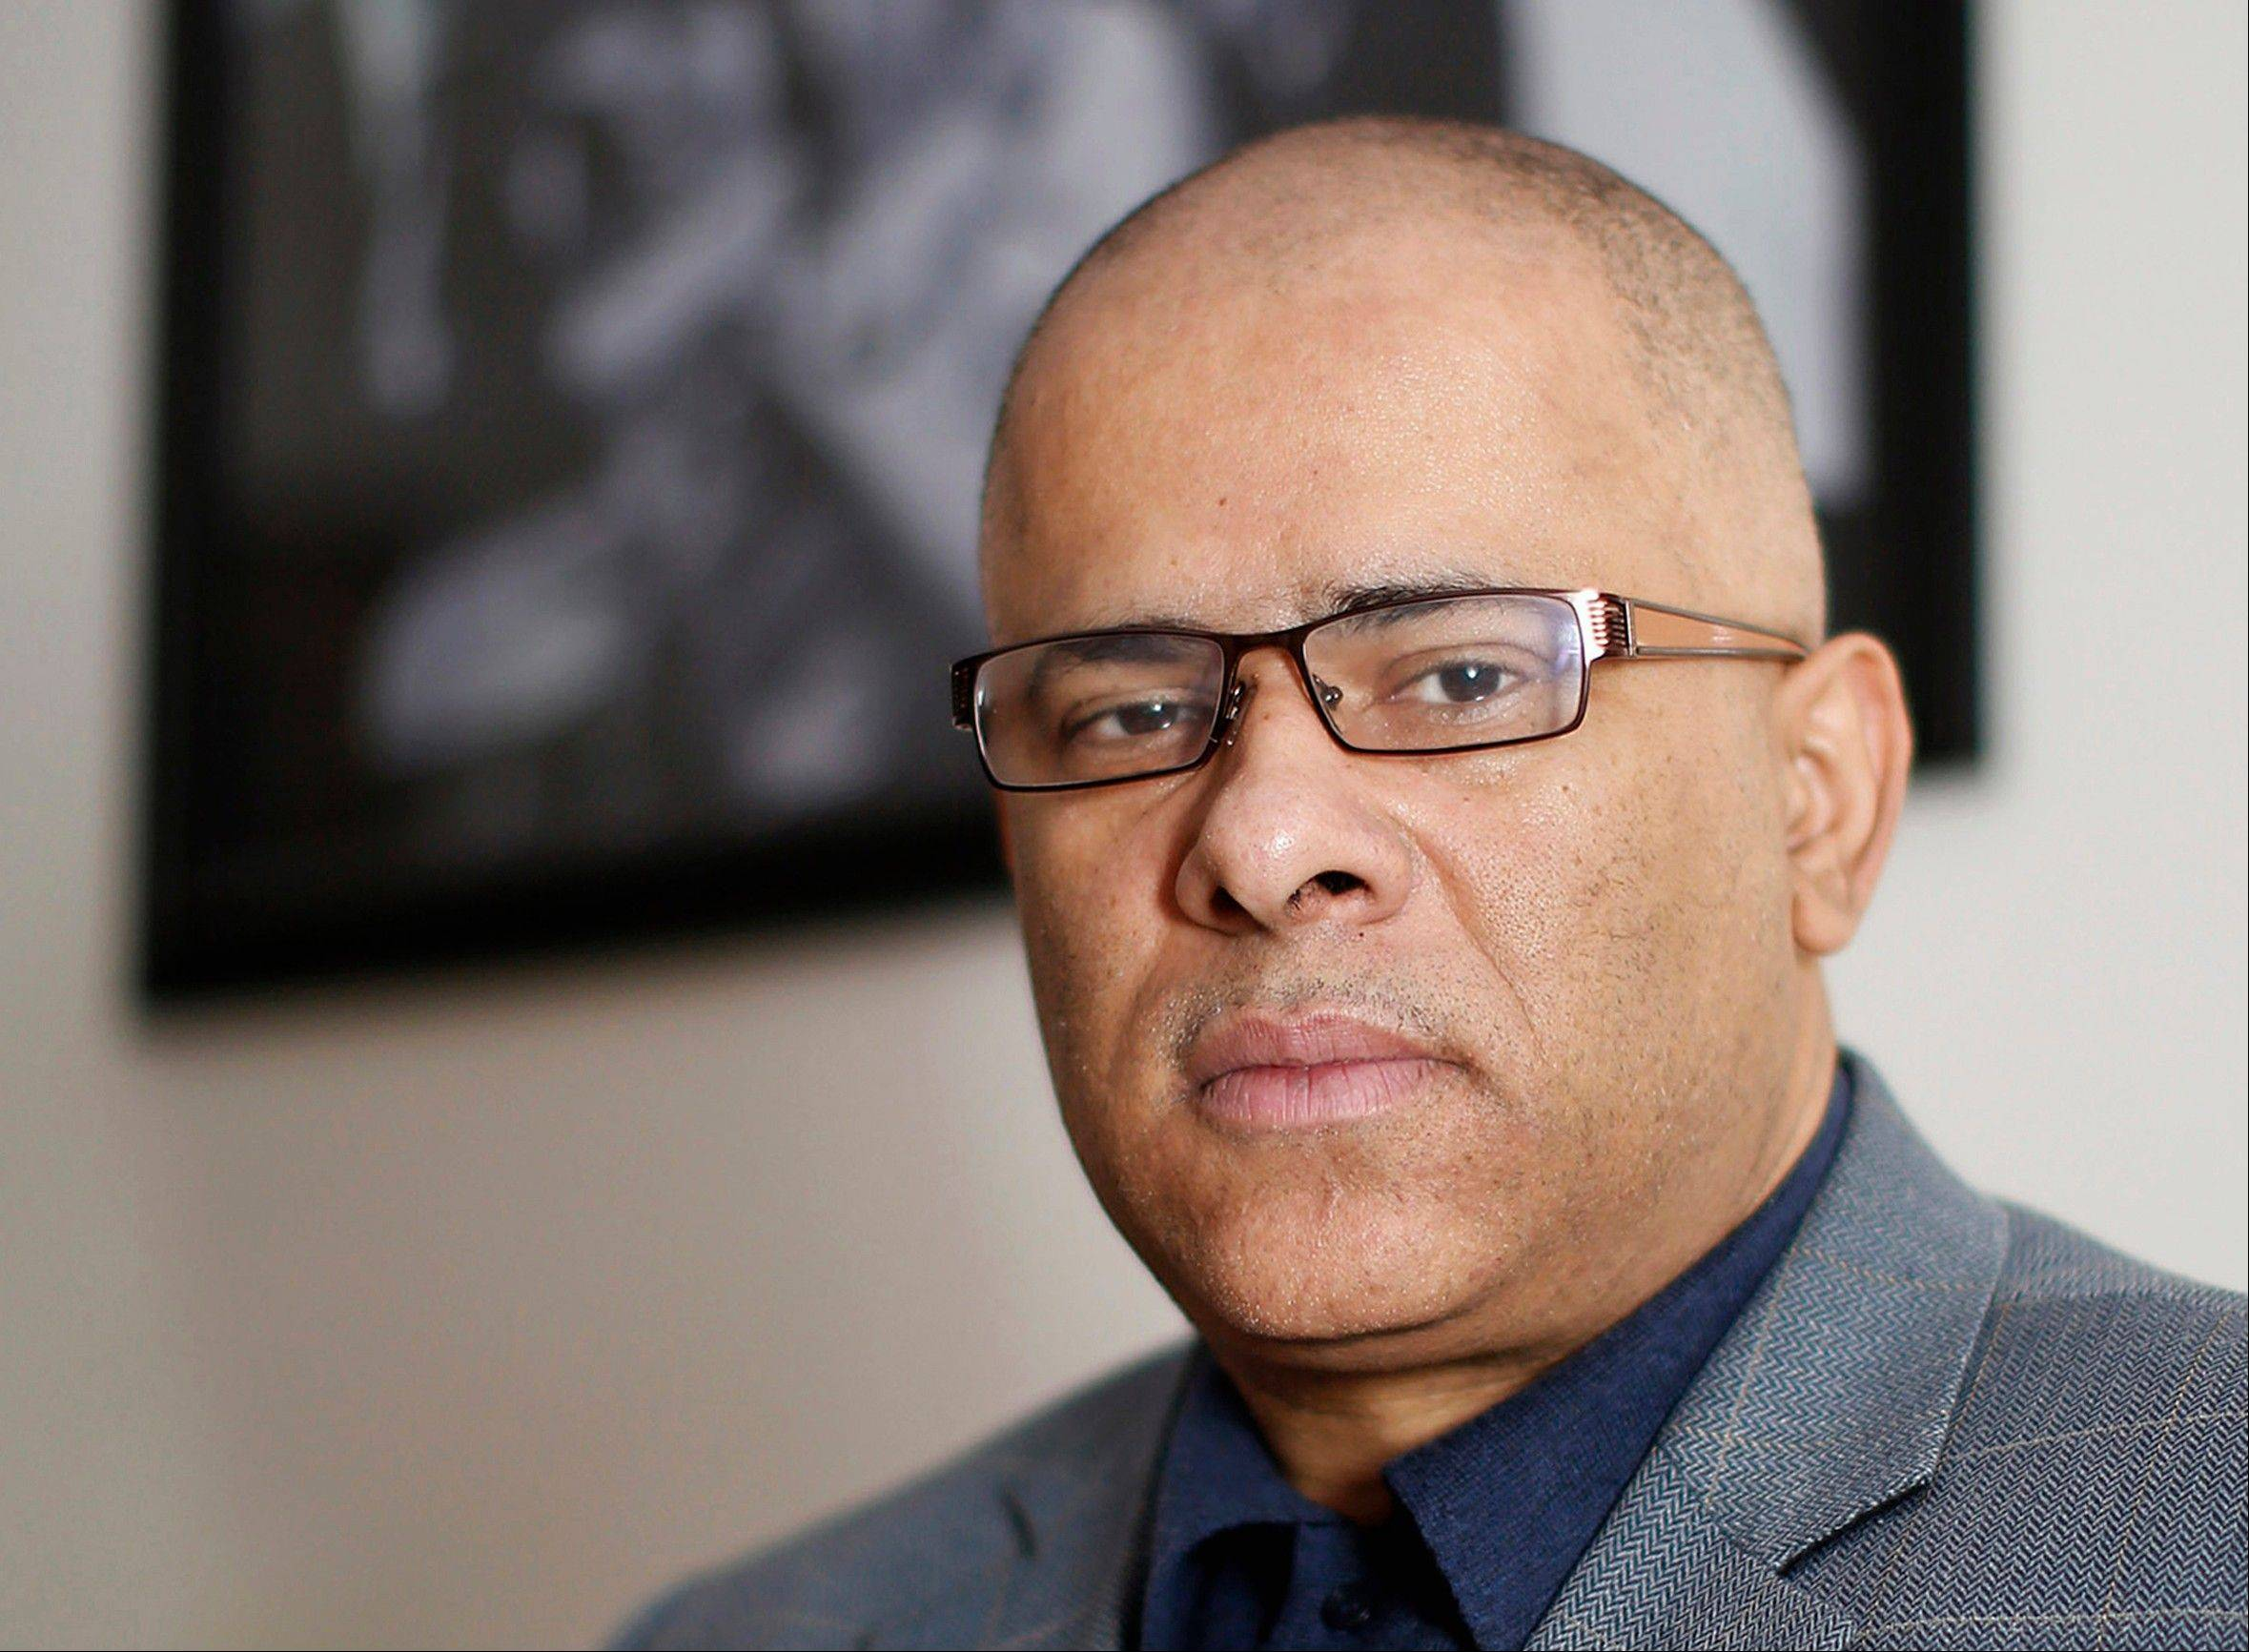 This April 12 file photo shows Tio Hardiman, then the director of the Chicago anti-violence group CeaseFire, in his office in Chicago. Illinois elections officials are expected to decide next week whether Hardiman can remain on the ballot to challenge Gov. Pat Quinn in the 2014 Democratic primary. The issue is whether lieutenant governor candidate Brunell Donald used her correct address on petitions. The Chicago woman says she�d recently moved, but didn�t change the address on her voter registration. Hardiman said Thursday he�s �ready to tackle all of the issues.�